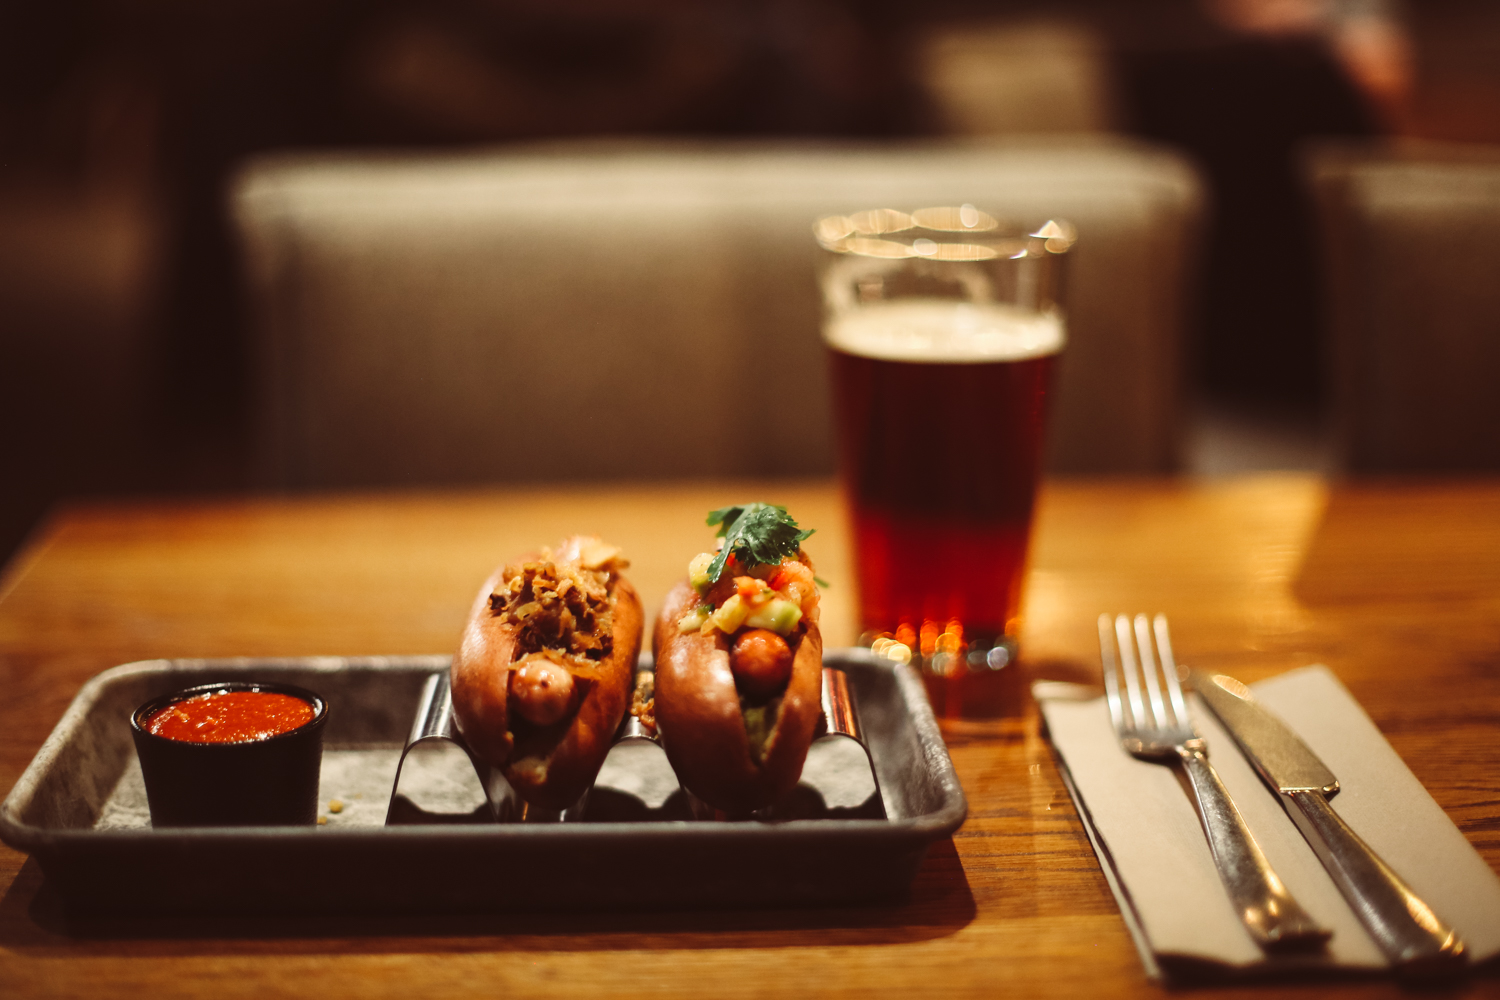 Hot dogs for dinner at Campfire – Downtown Camper by Scandic's hotel restaurant